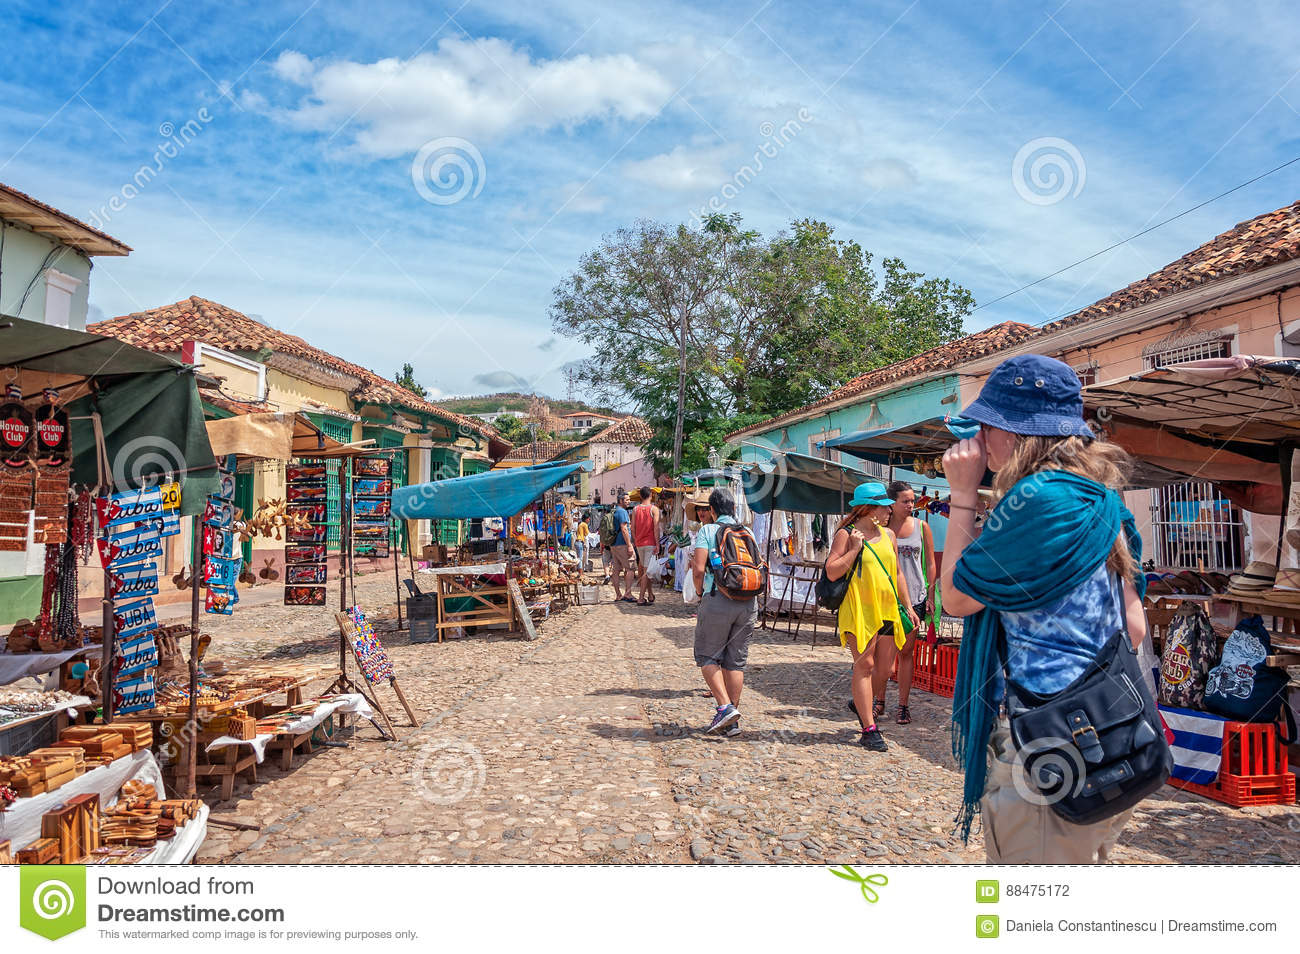 People at a market in Trinidad, Cuba